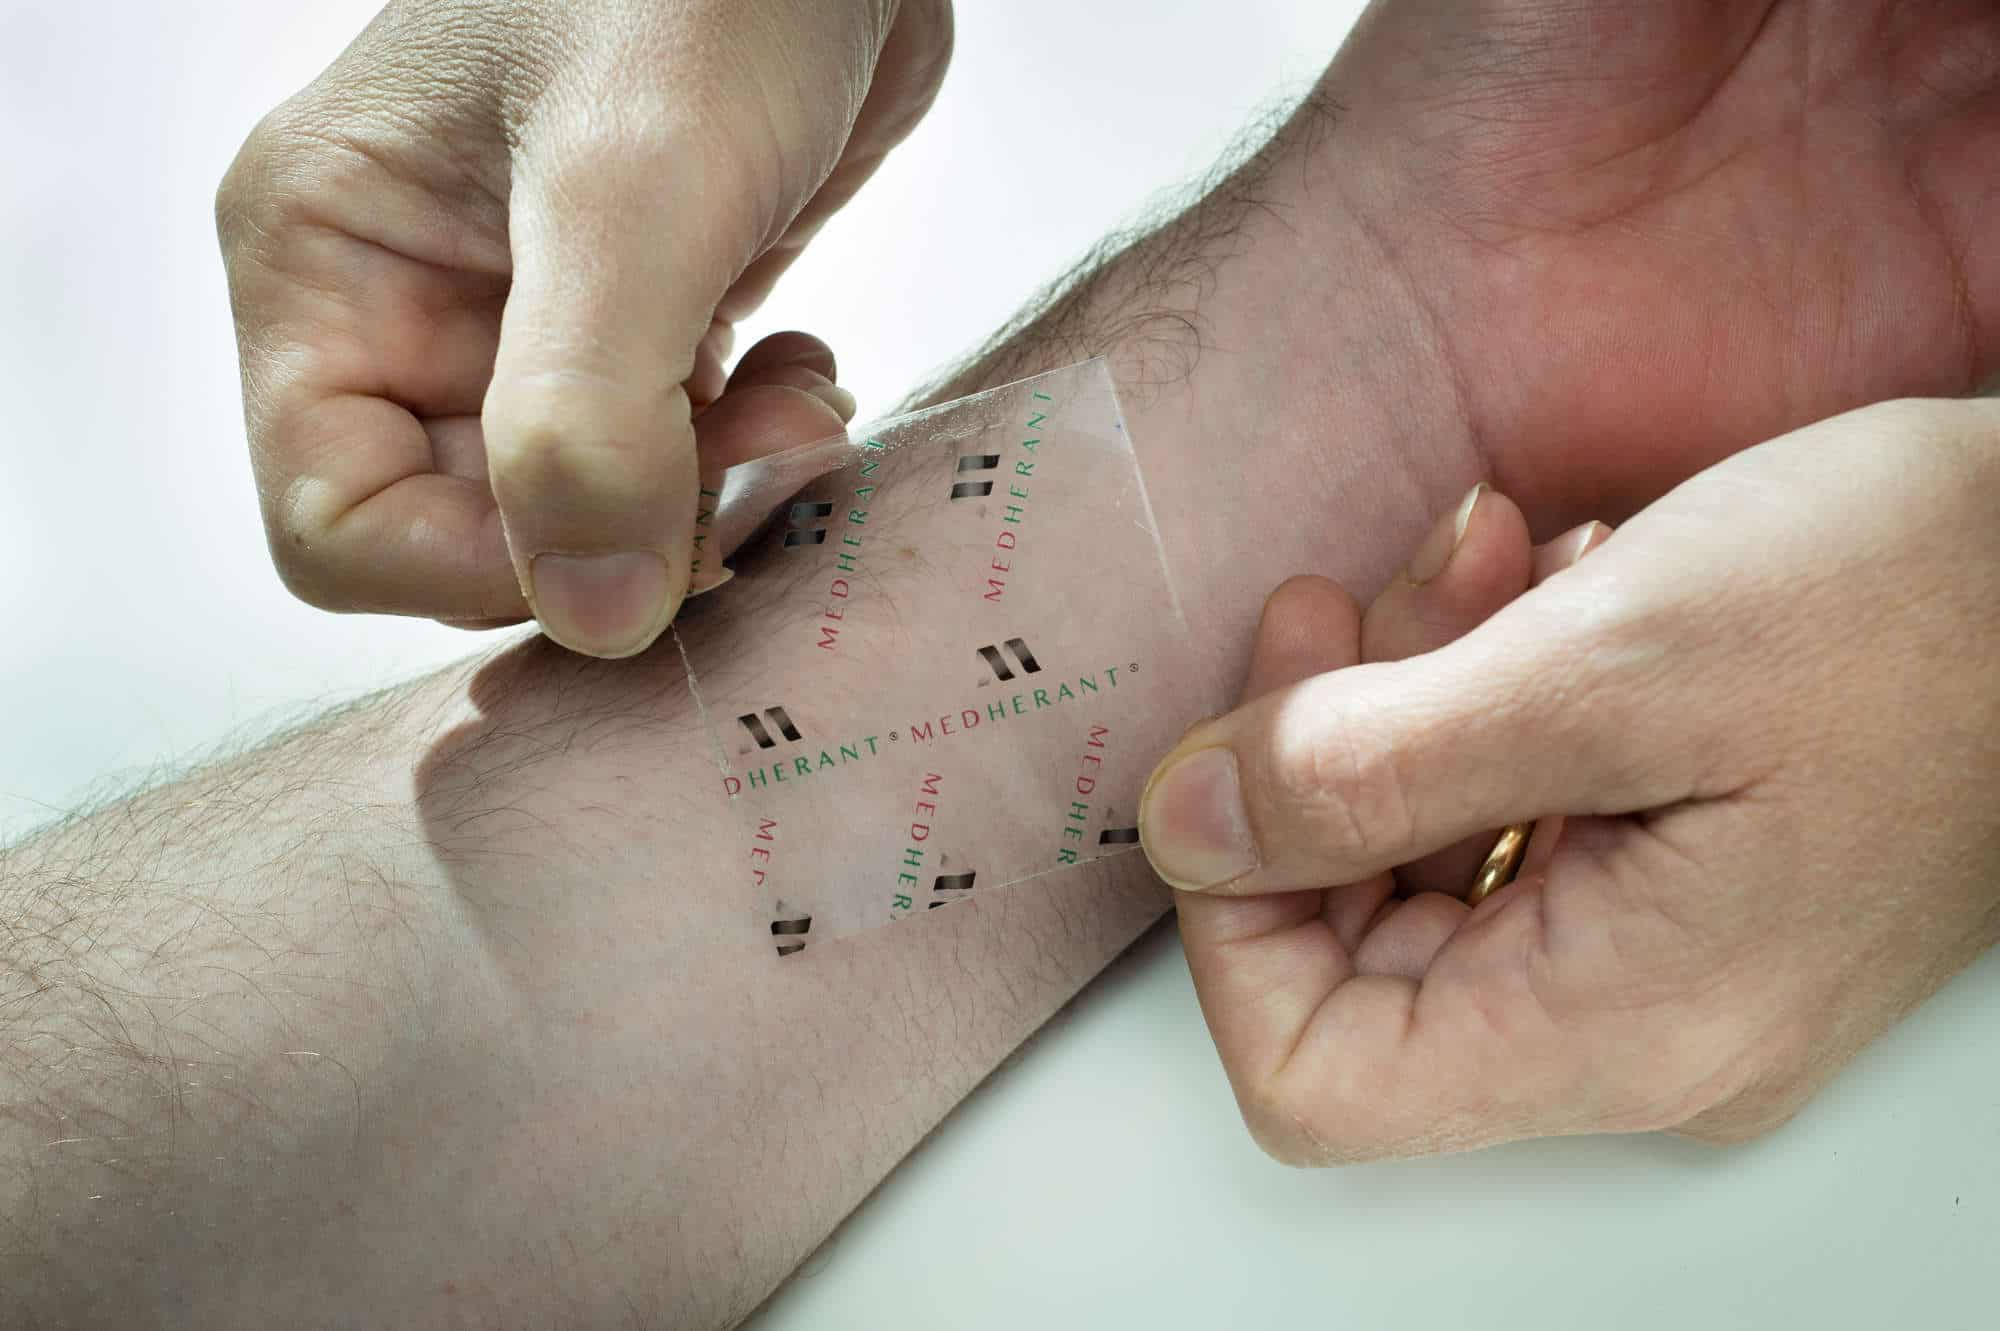 Ibuprofen Skin Patch Created For Direct Pain Relief